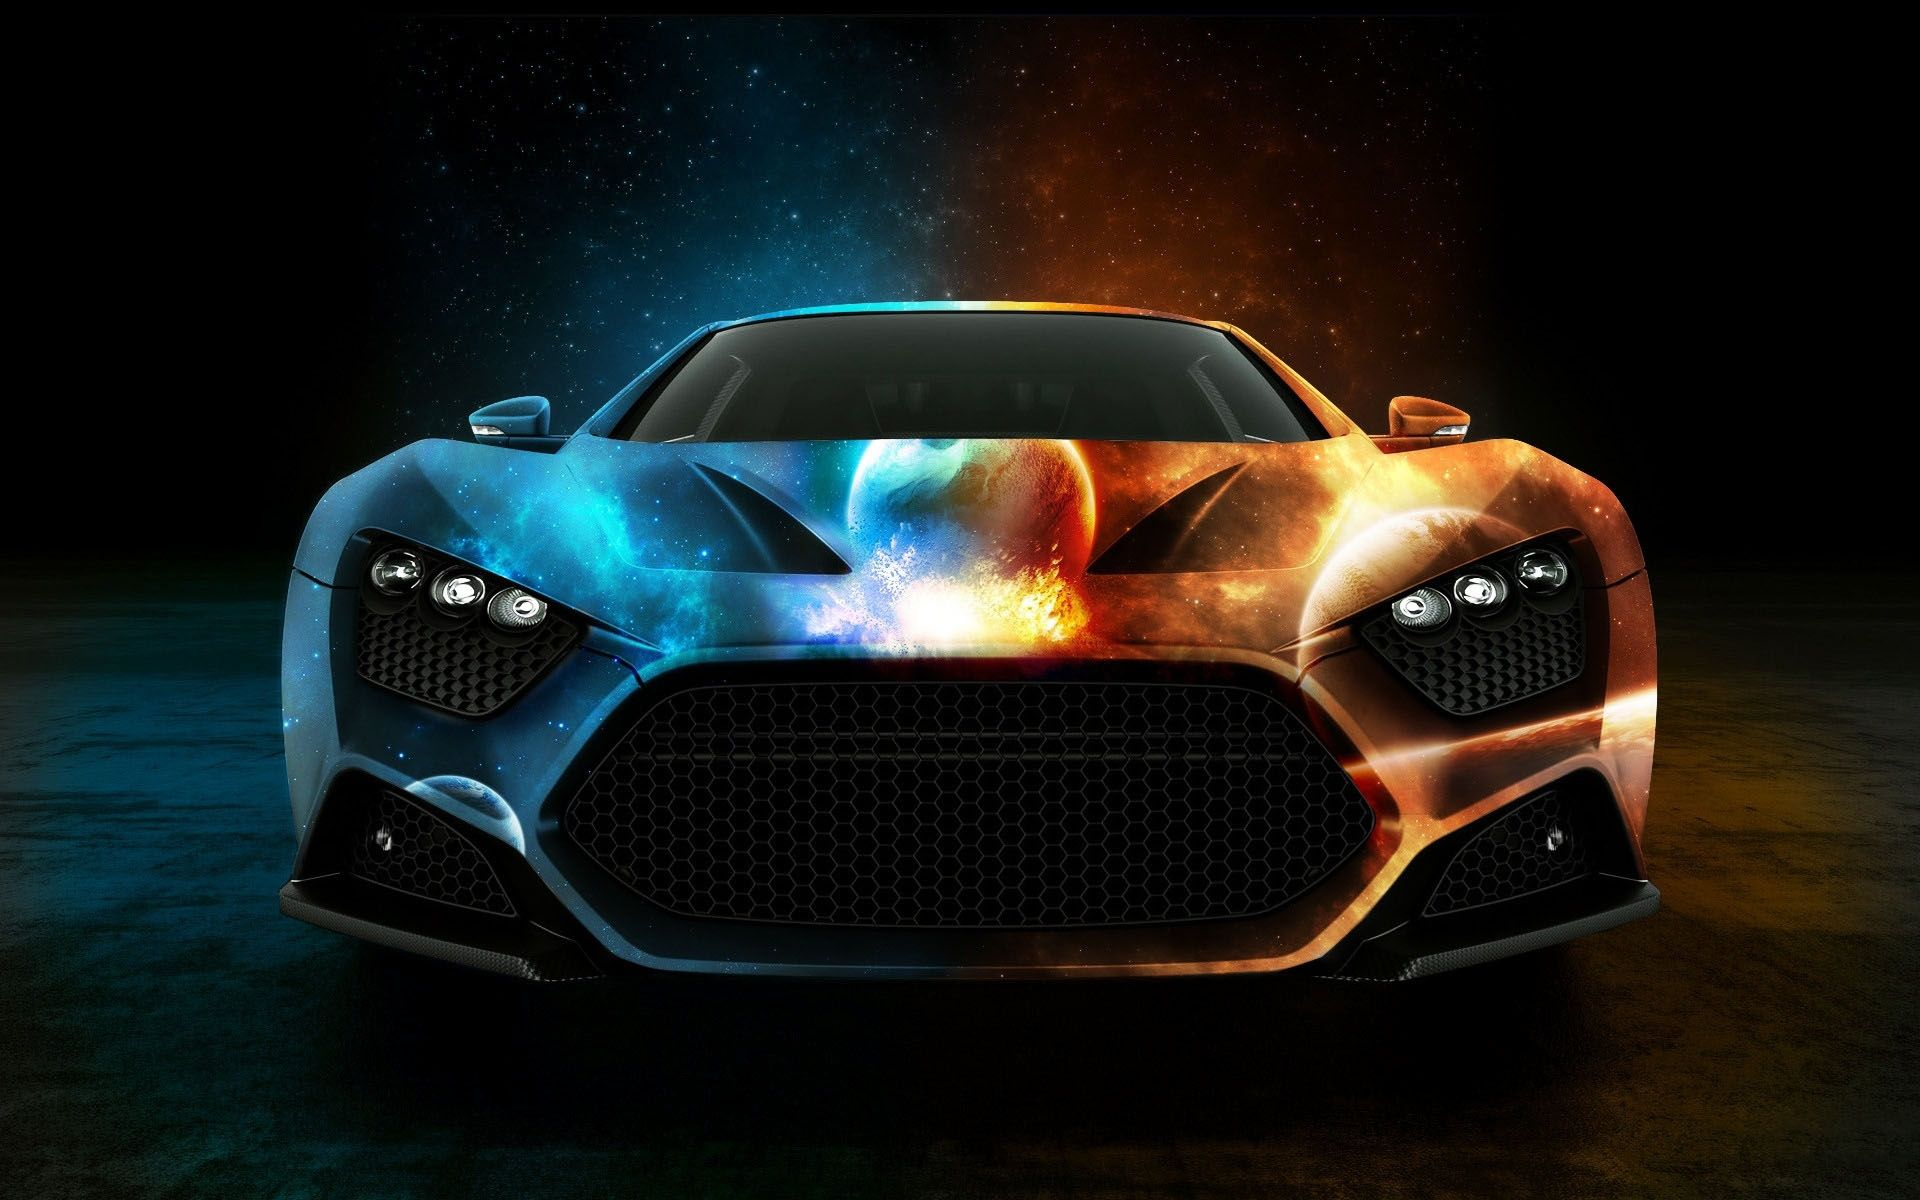 Zenvo St1 Special Effect Hd Wallpaper Cool Car Pictures Sports Car Wallpaper Car Backgrounds